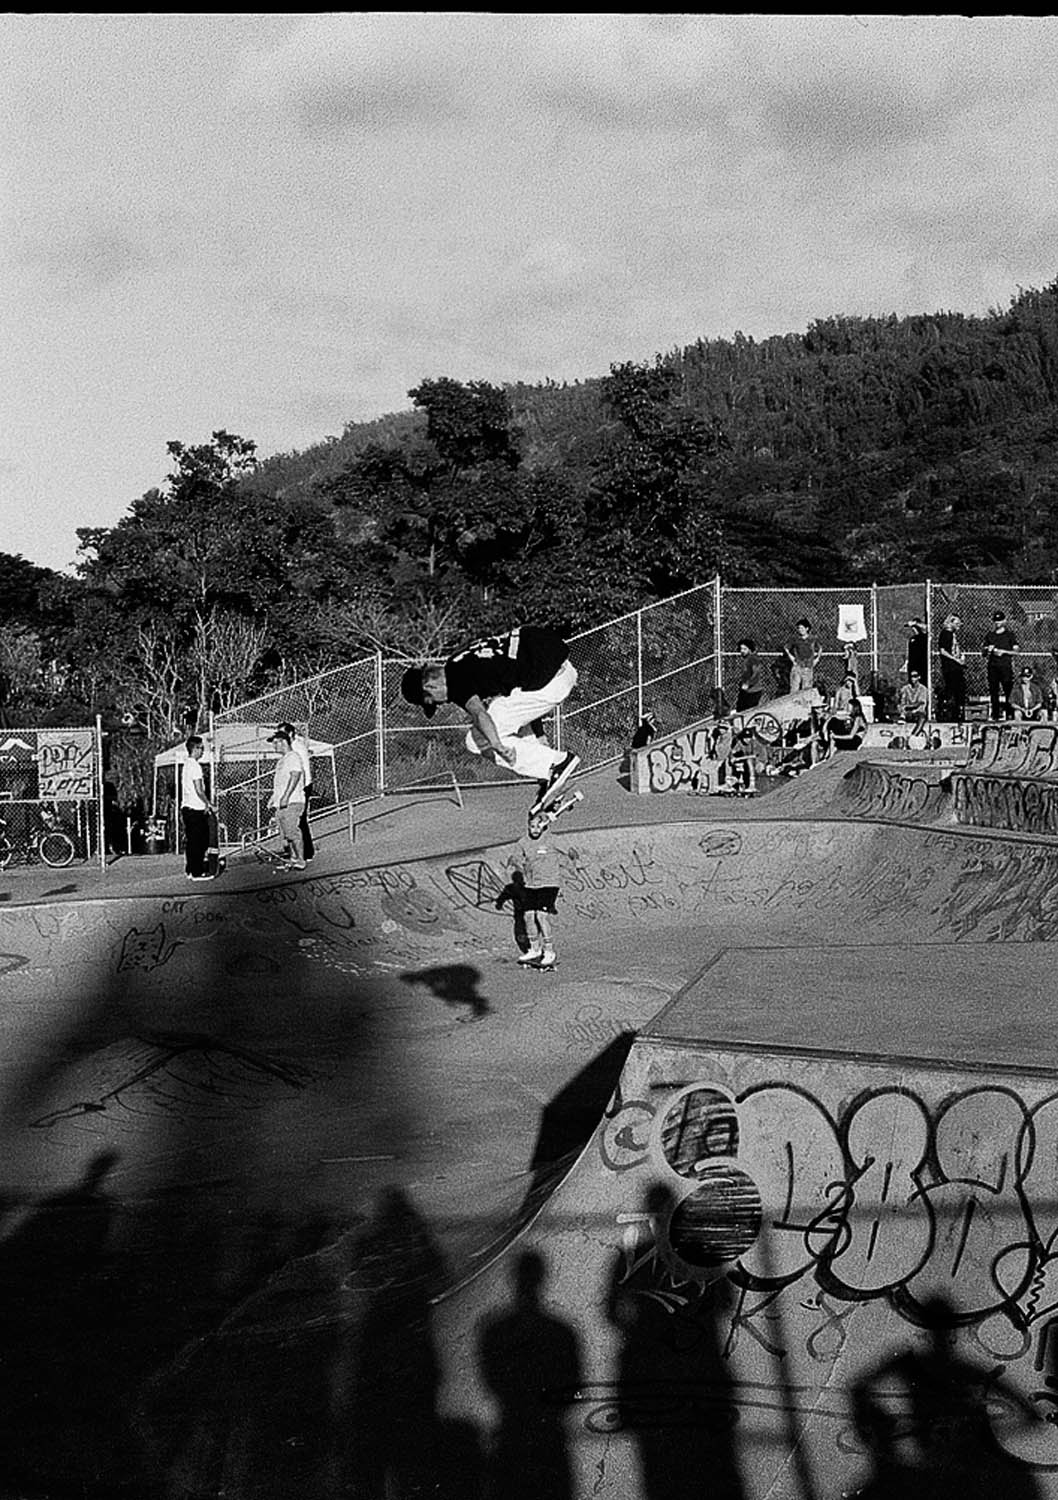 Evan Mock getting some air at the RVCA Skate event in Hawaii. Shot on my Olympus PenFT at box speed.